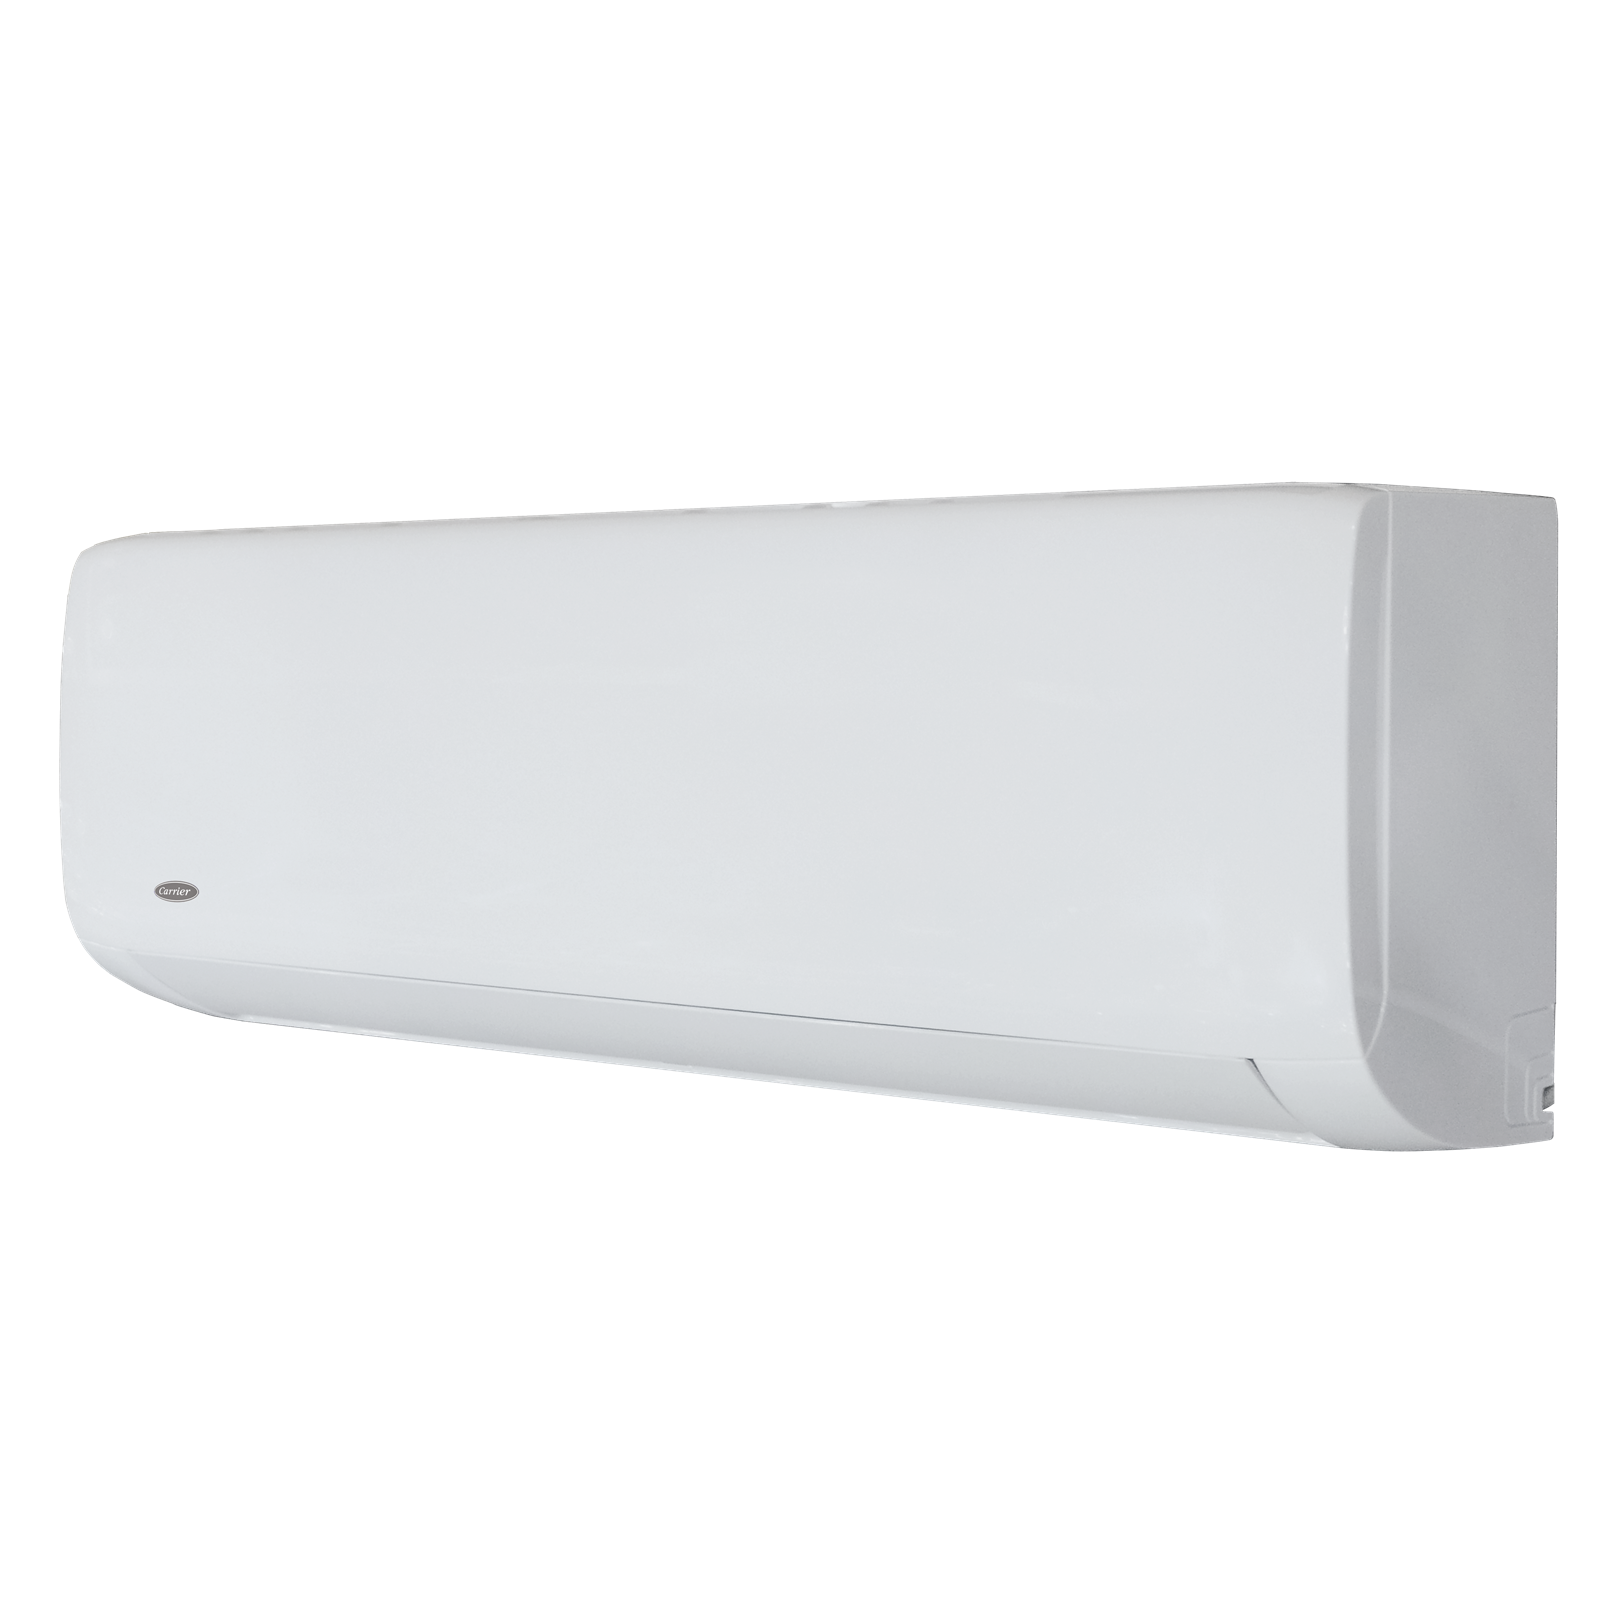 Carrier Allure 2.0kW Reverse Cycle Split System Air Conditioner